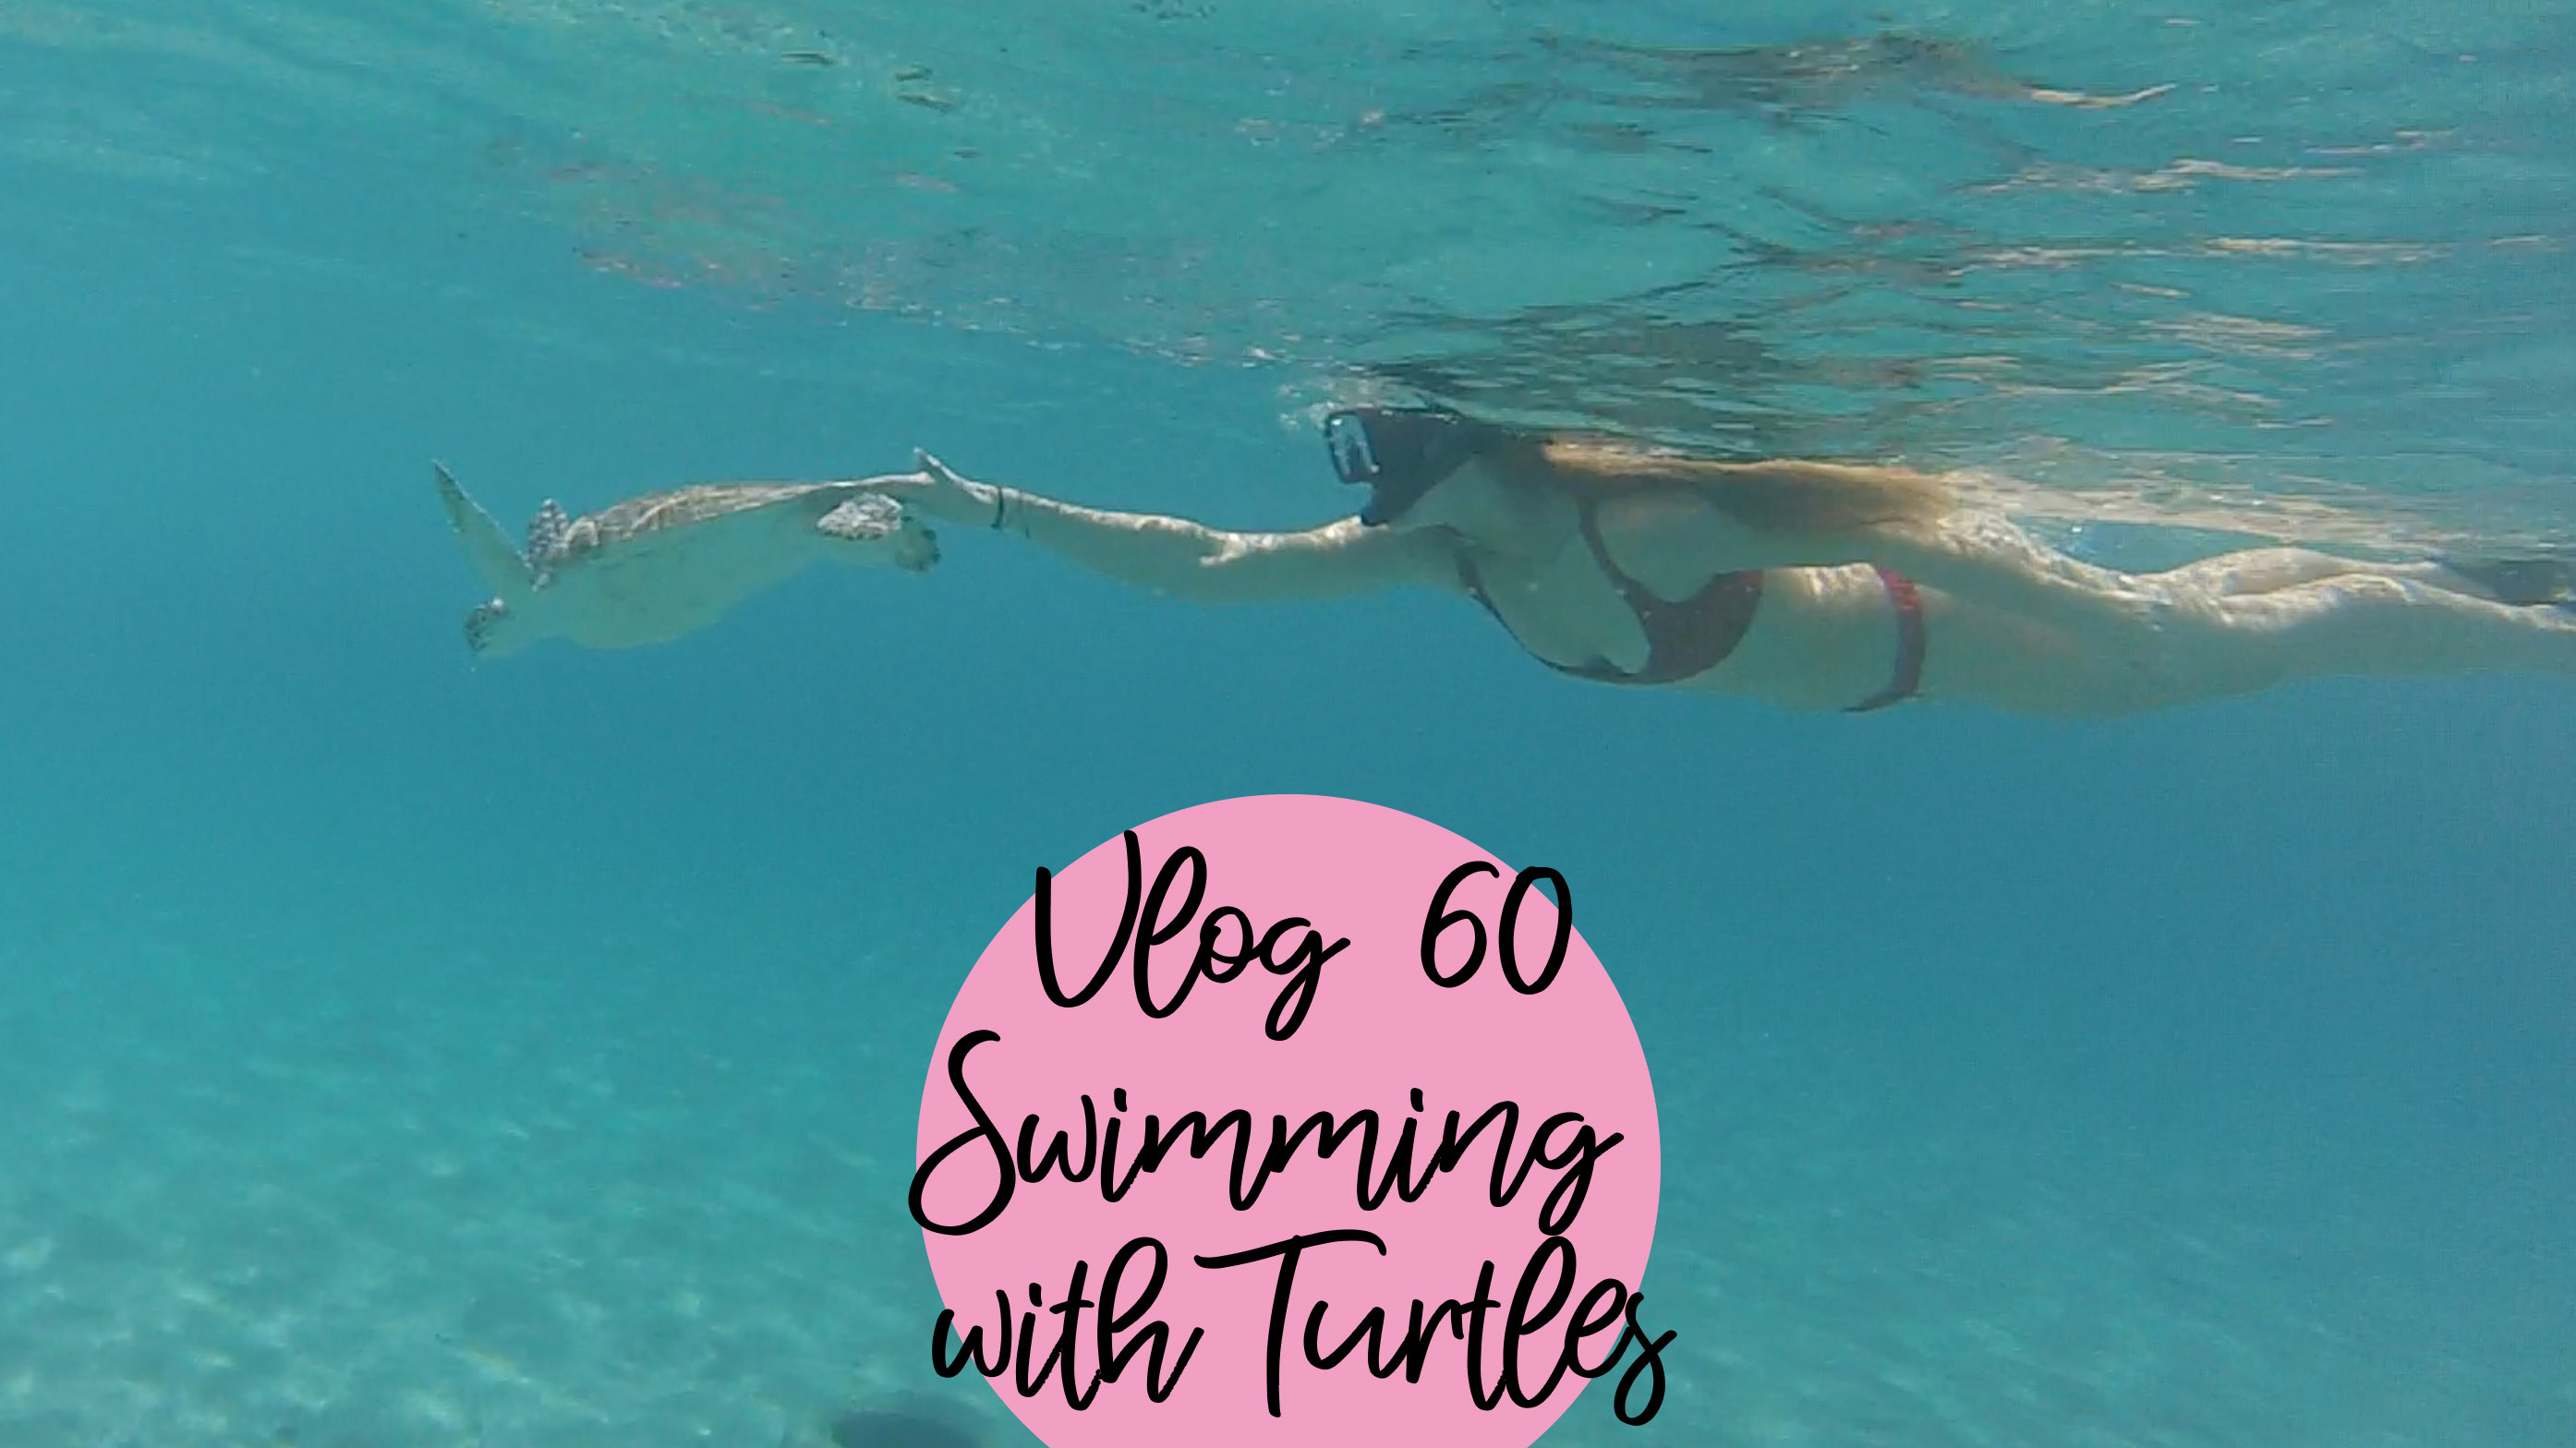 VLOG 60 | SWIMMING WITH TURTLES